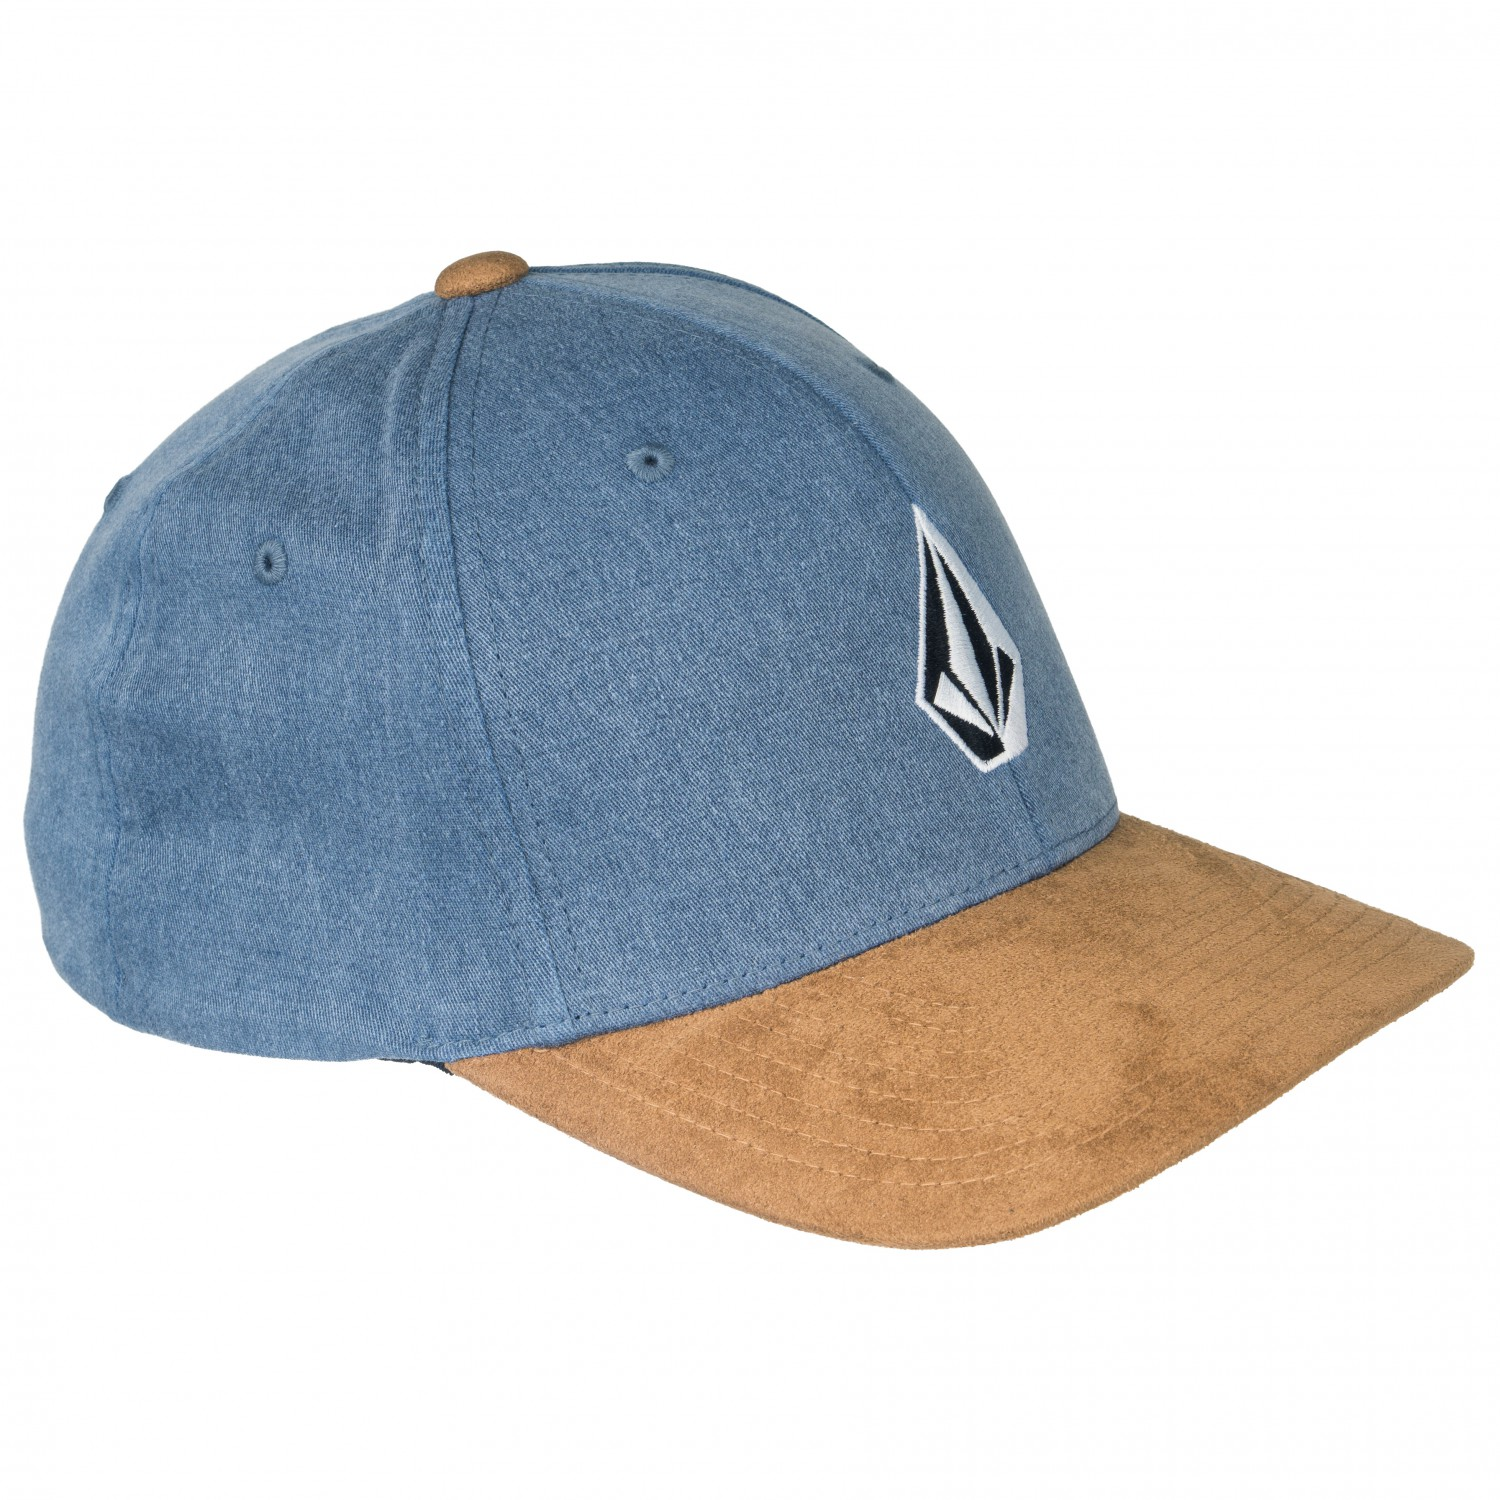 5fc83f08747 ... 50% off volcom full stone heather xfit cotton cap a9073 010dc